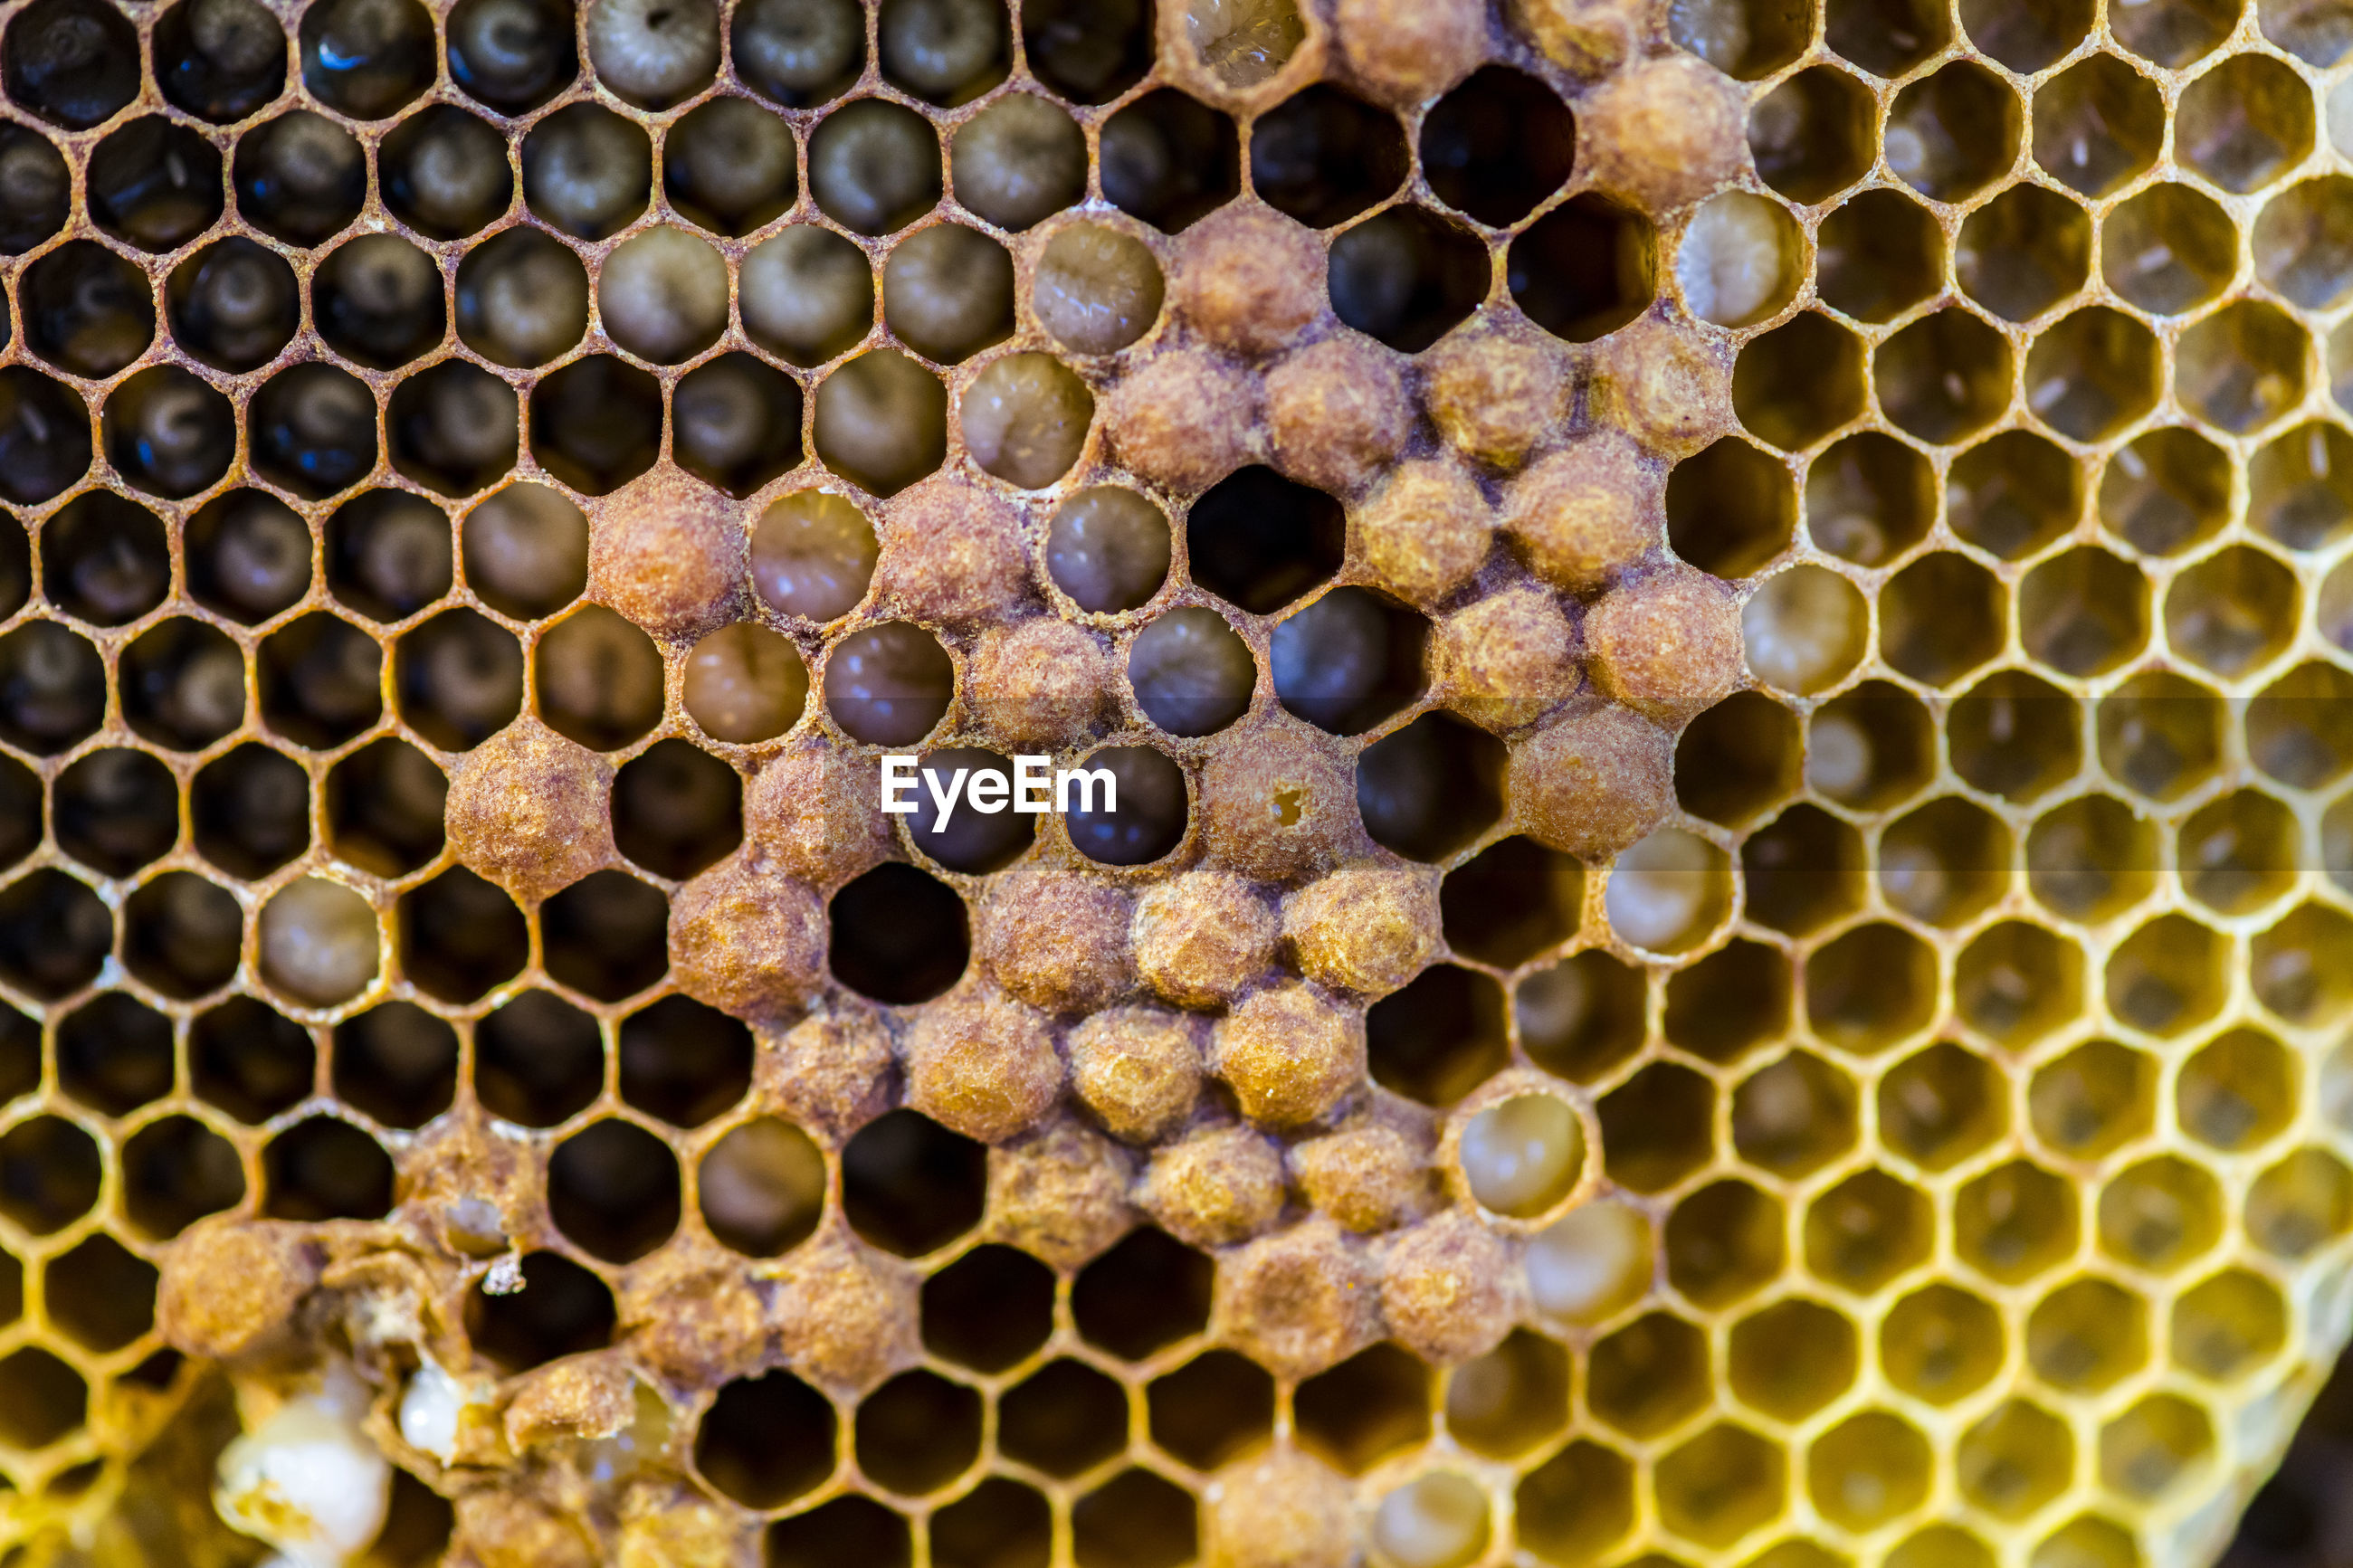 Full frame shot of bees and honeycomb